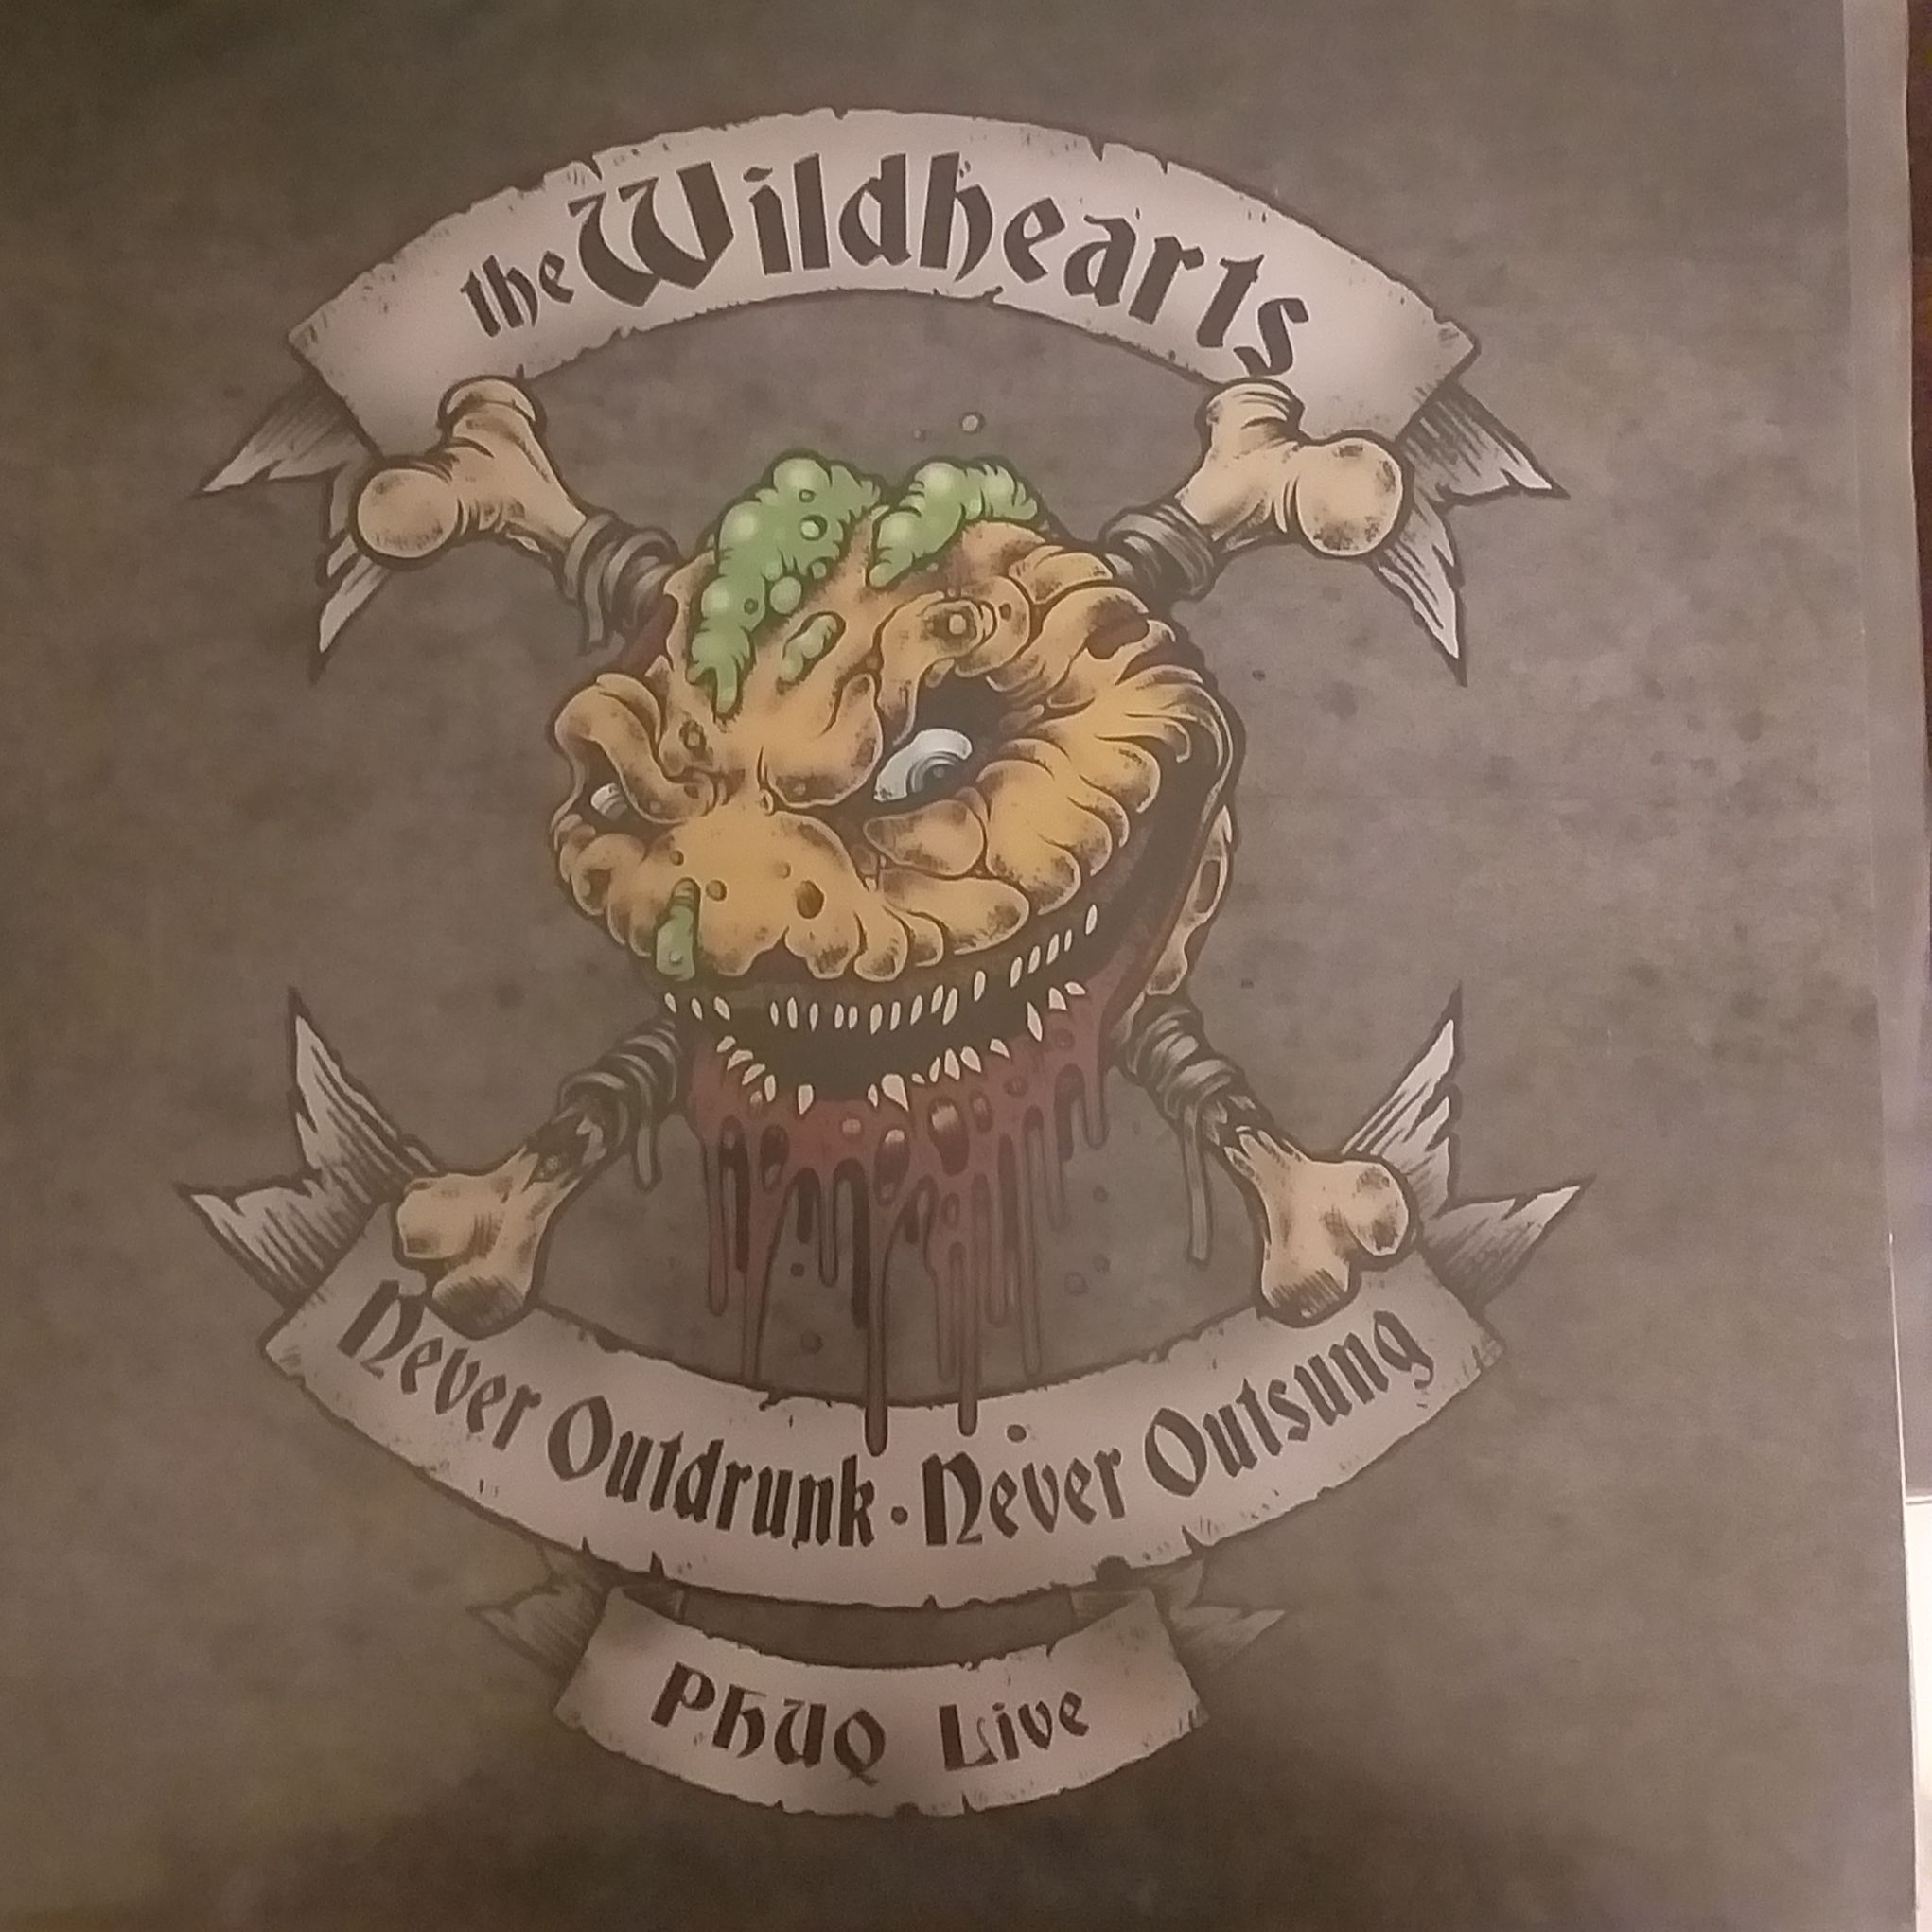 The wildhearts  Never  outdrunk-never outsung,phuq live LP undefined